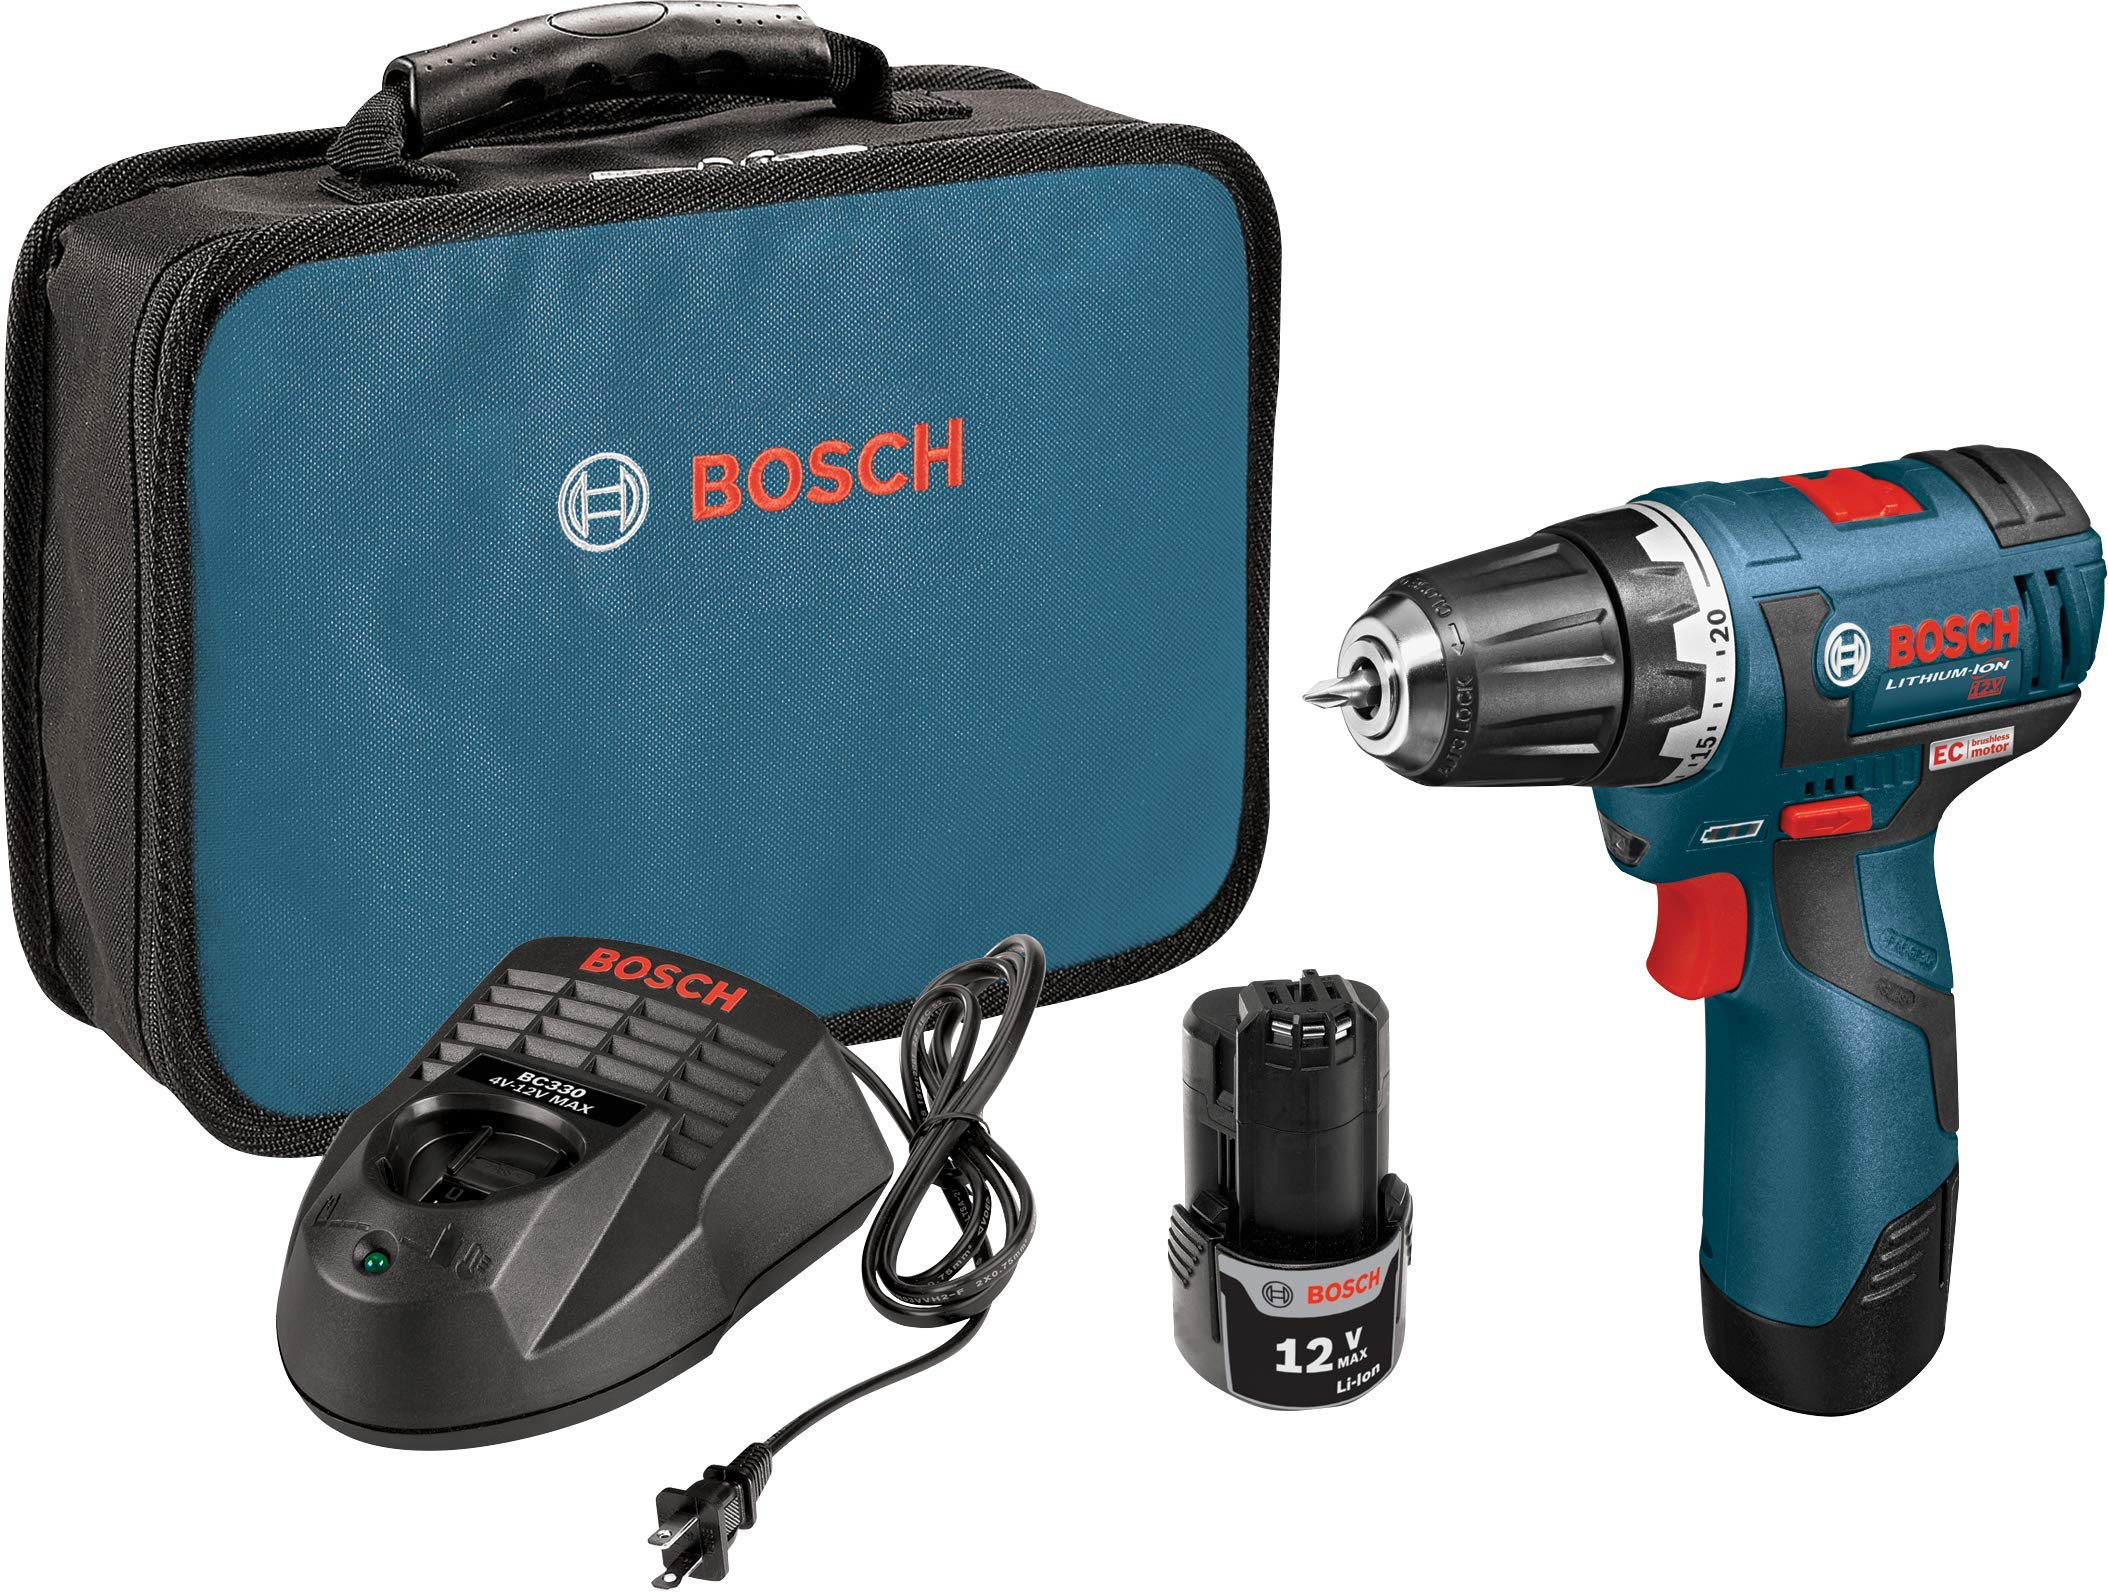 Bosch Brushless PS32 02 Lithium Ion Batteries